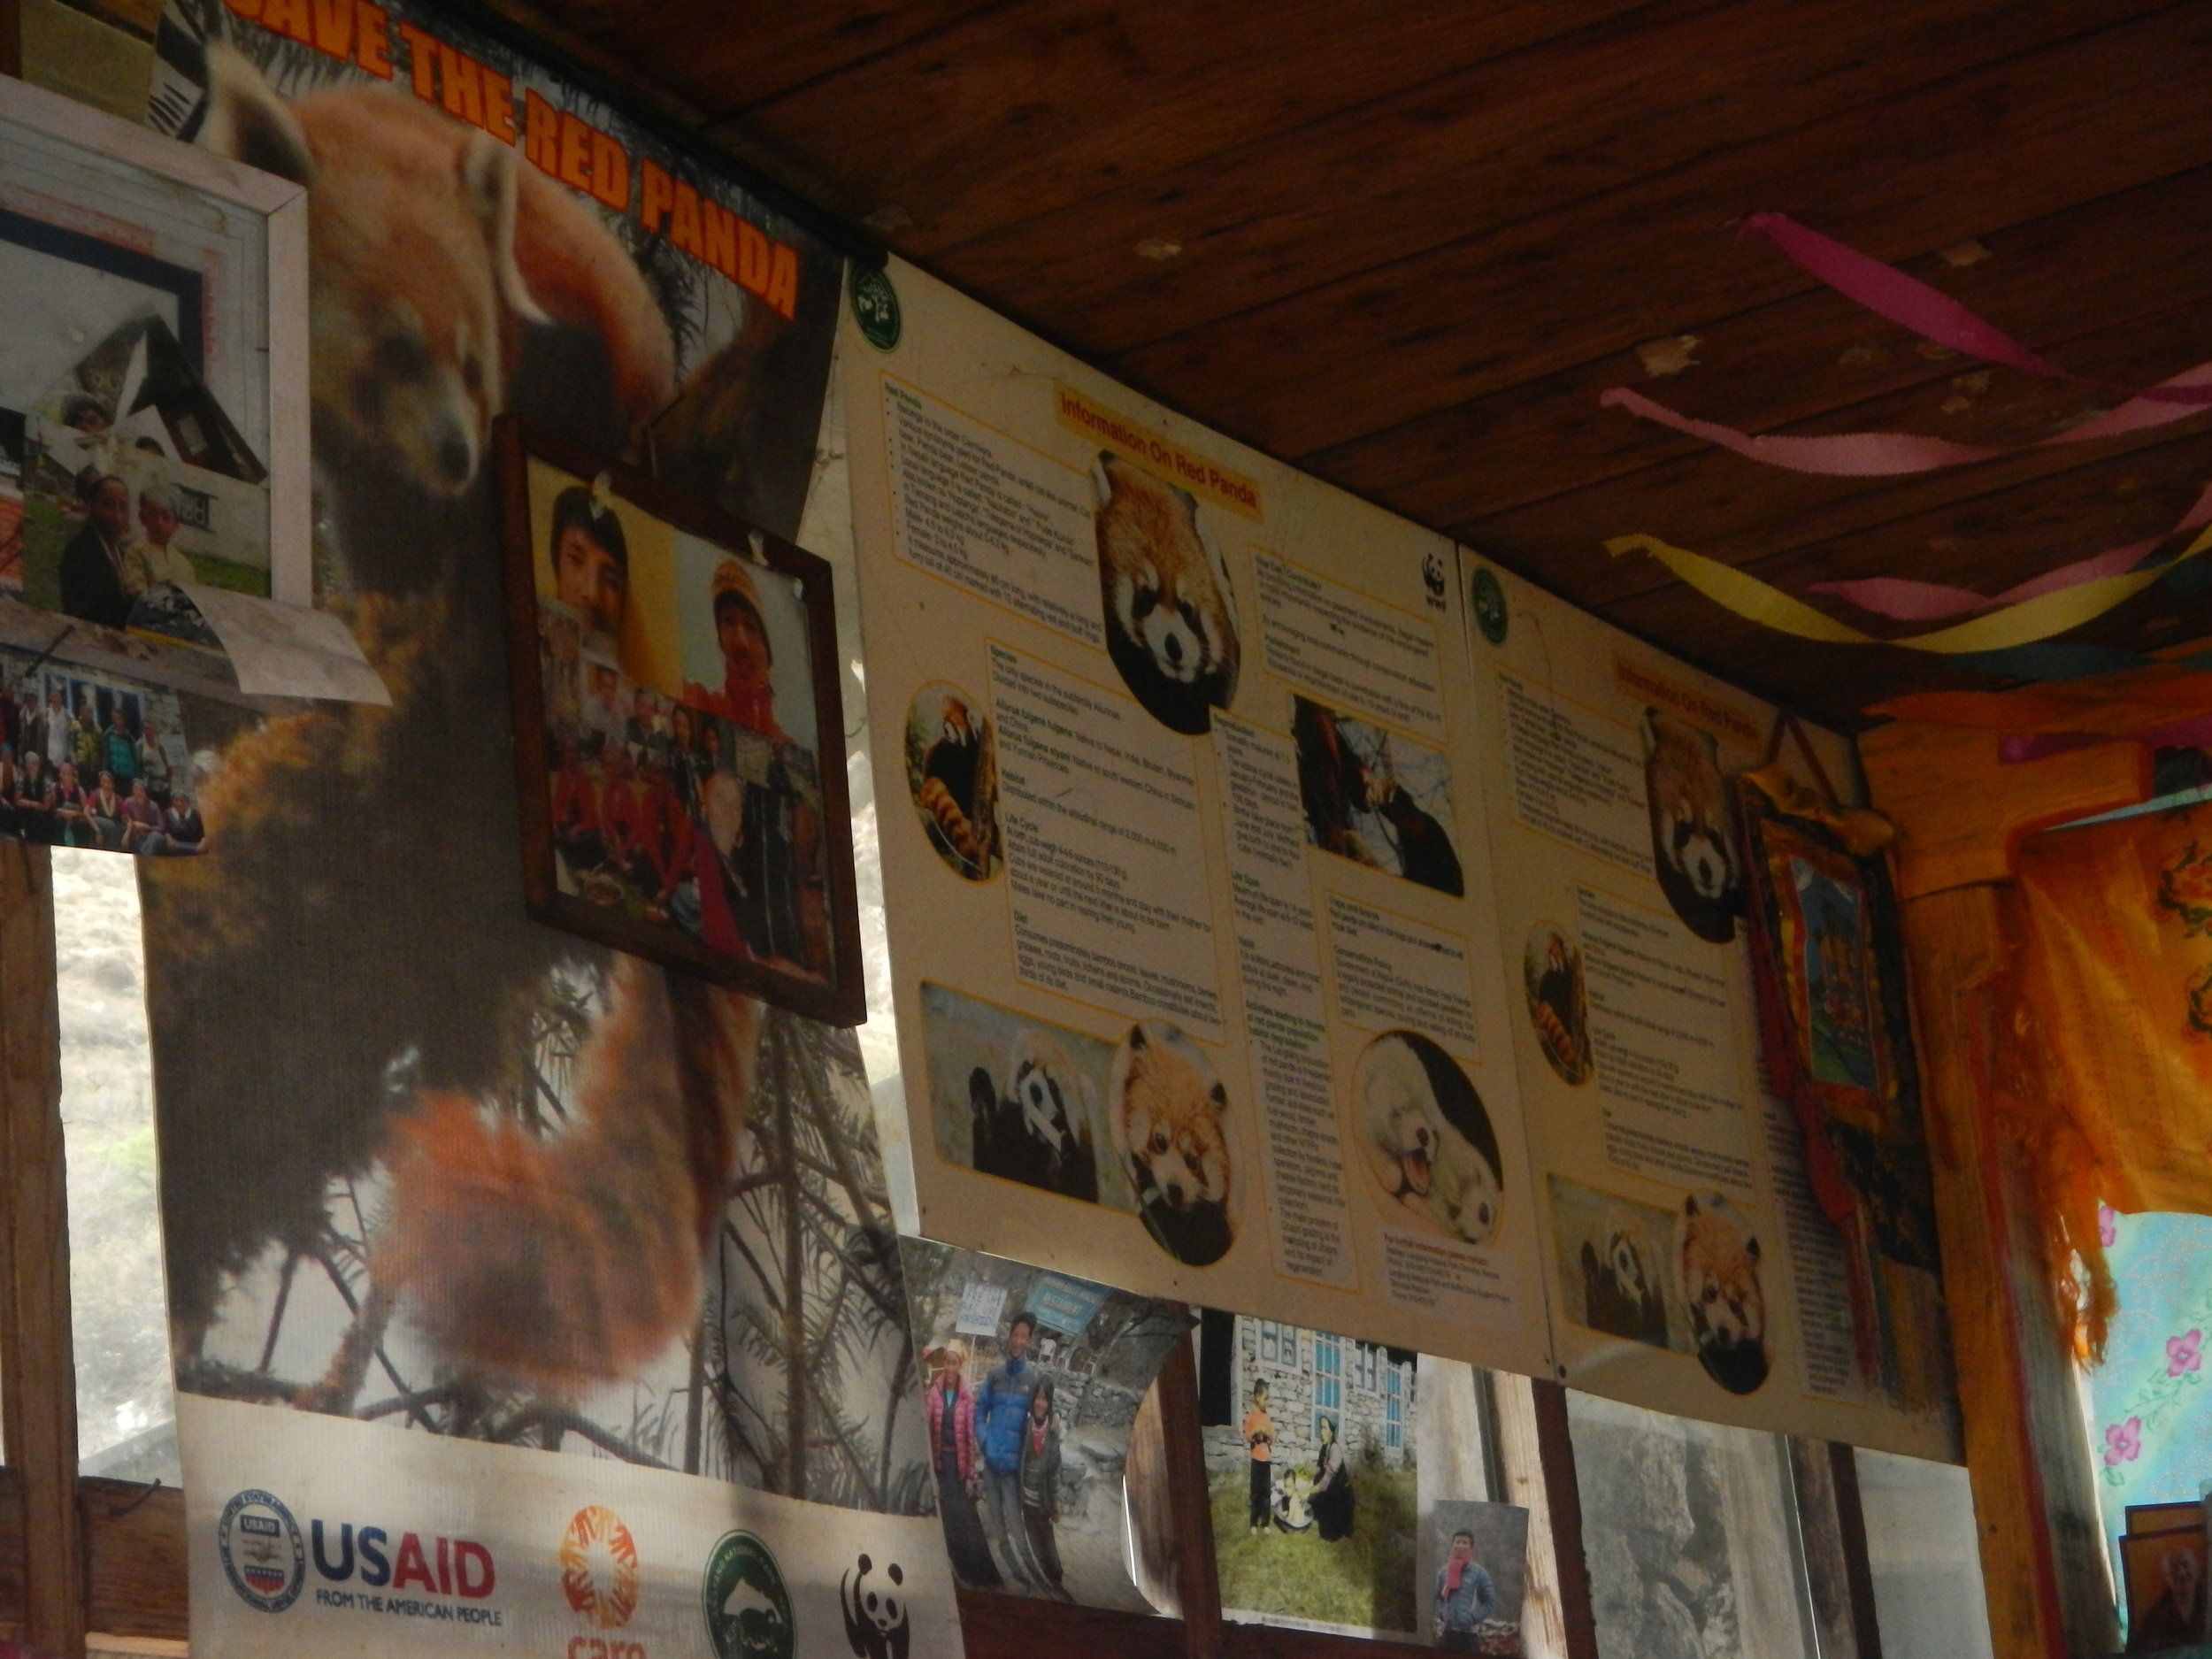 Red panda informational posters at the tea house.